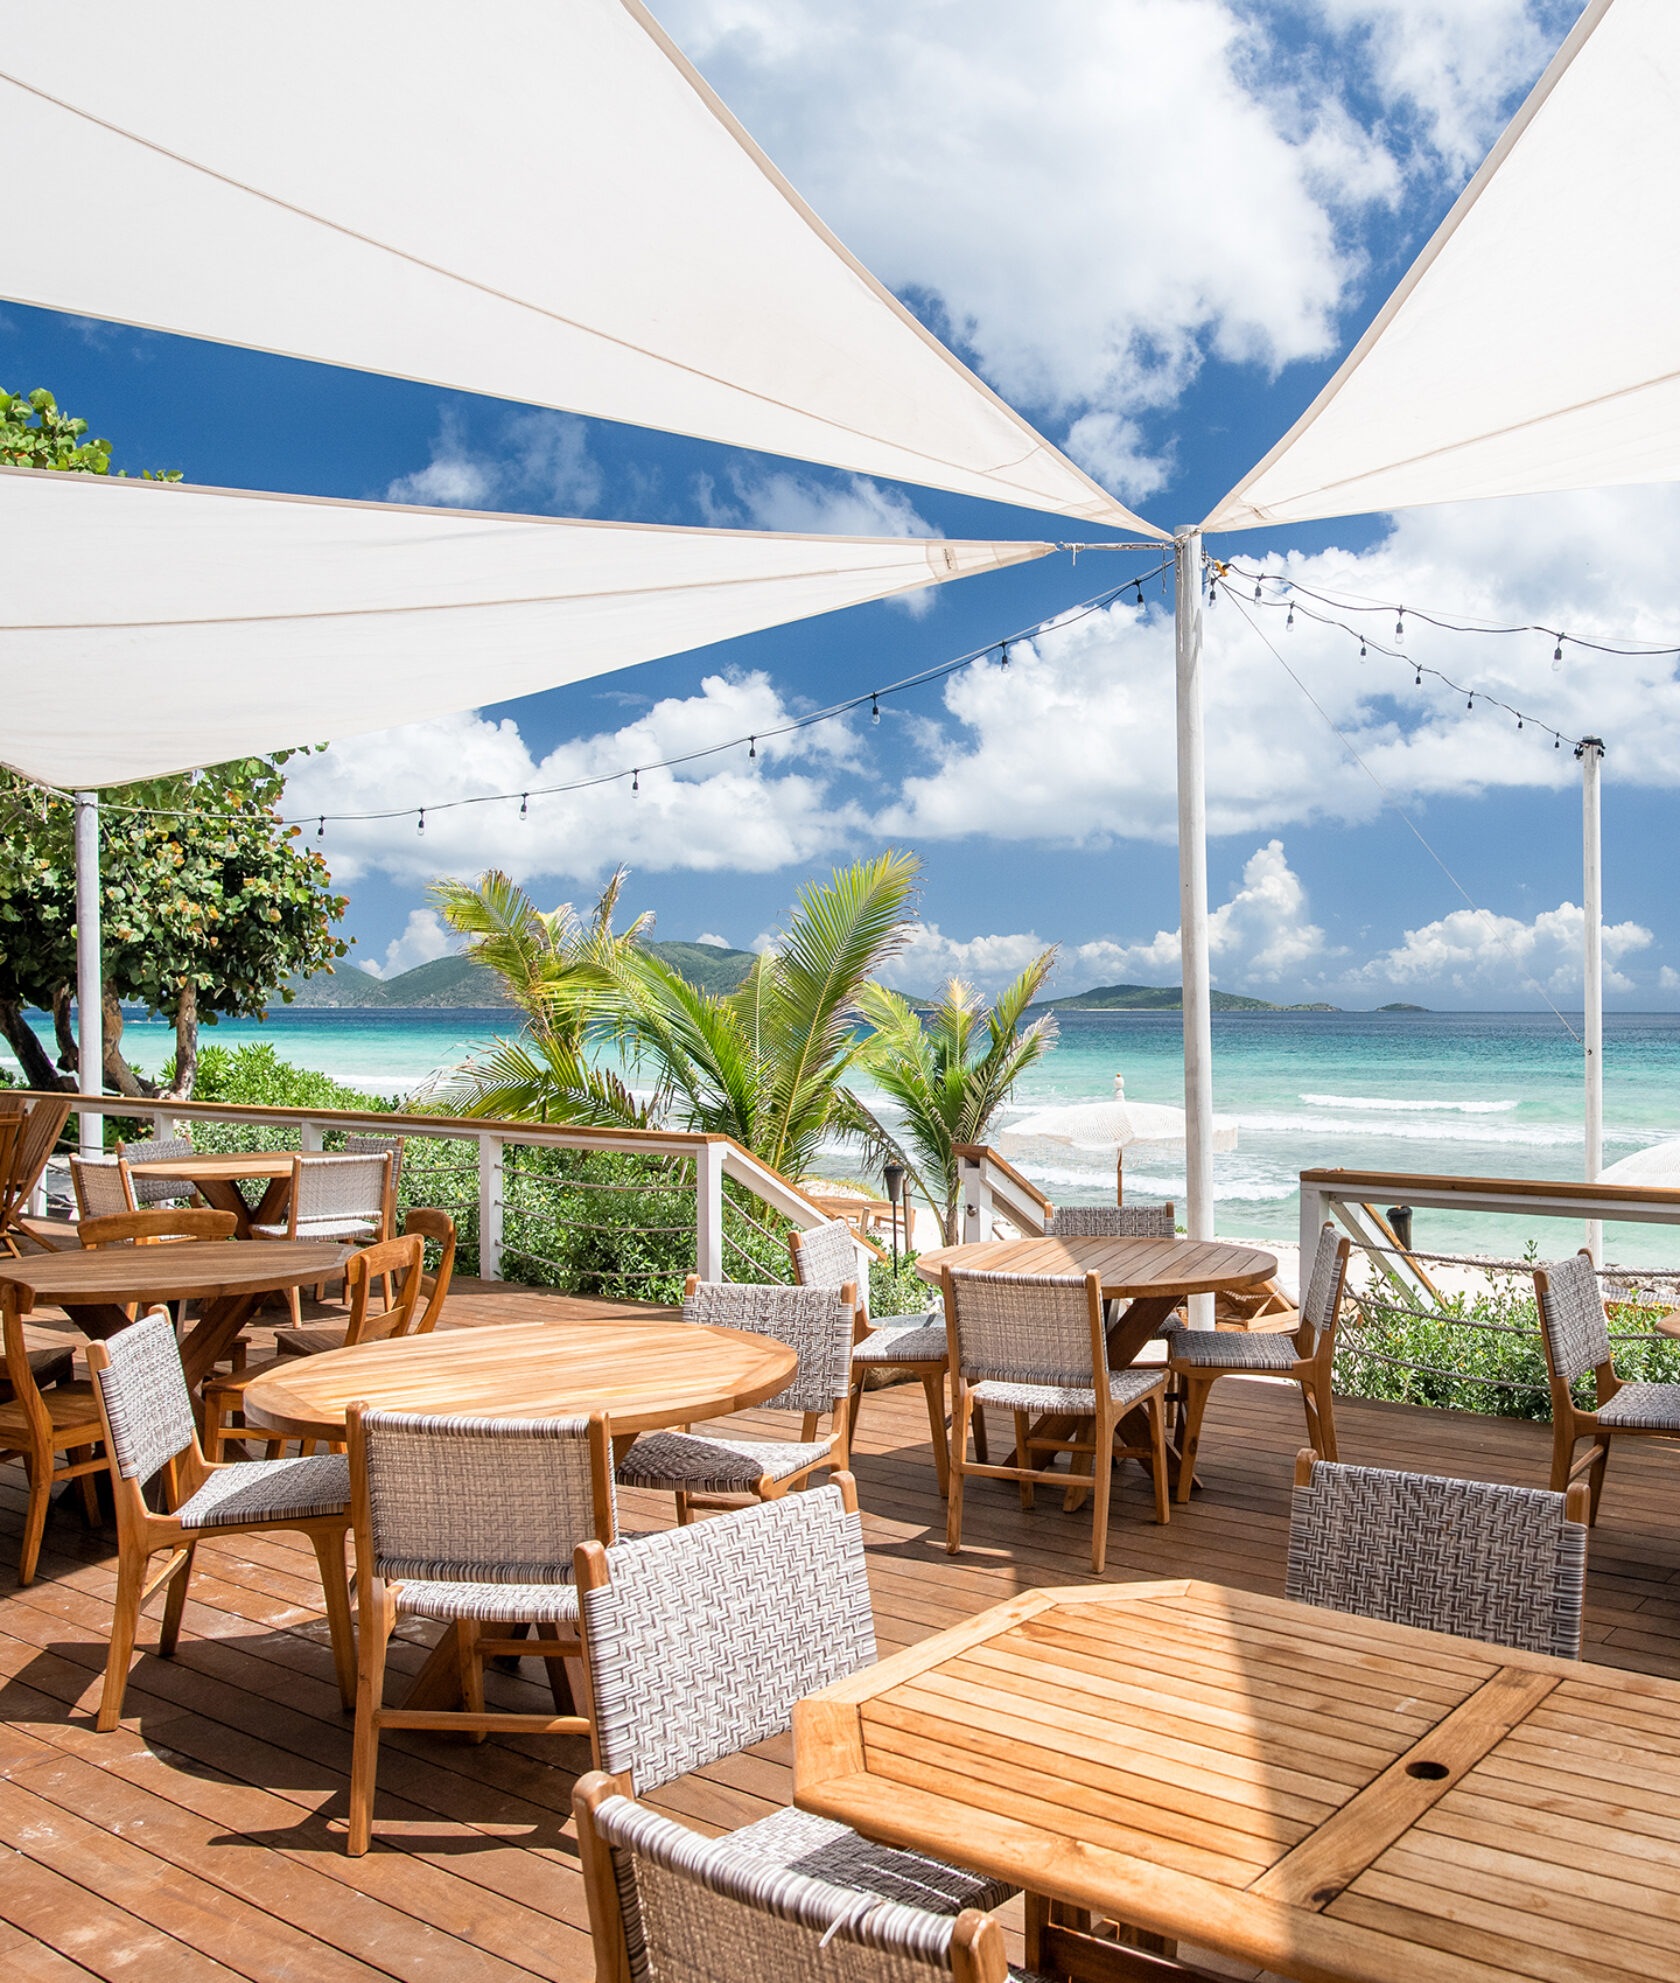 Outdoor dining by the ocean